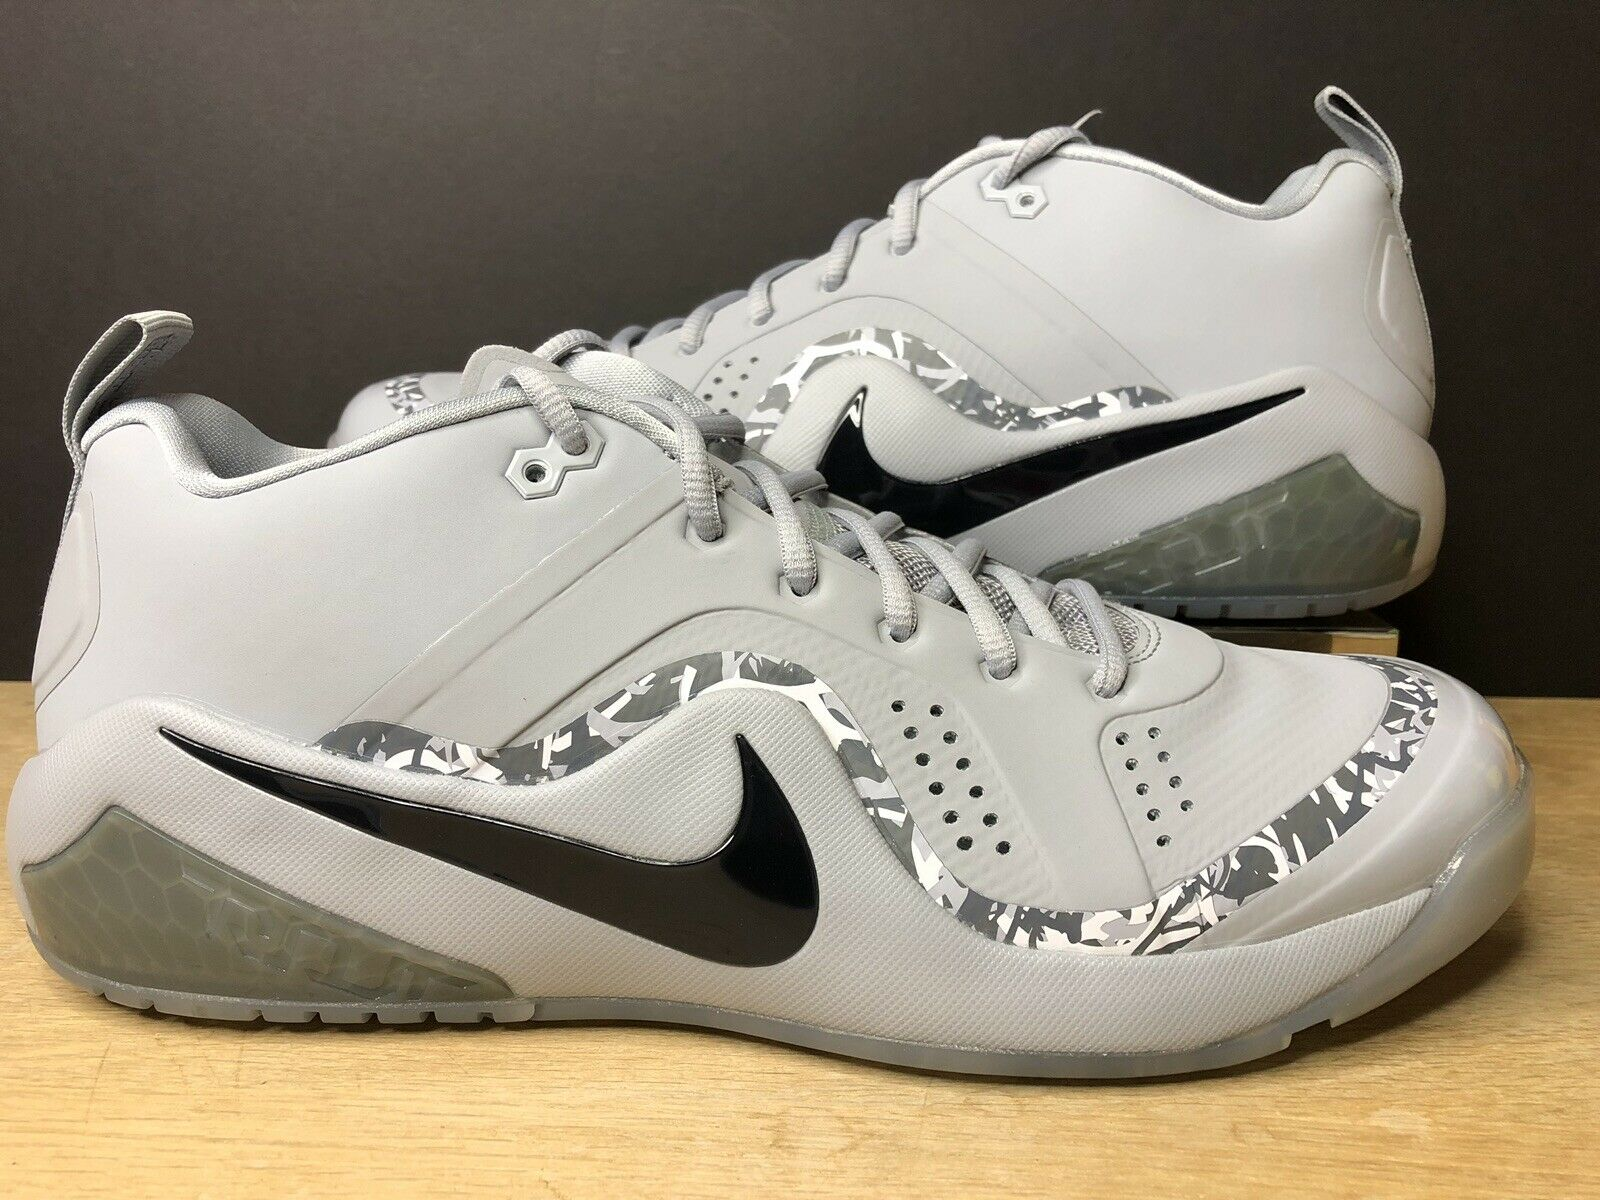 Nike Force Zoom Trout 4 Turf Wolf Grey 917838-002 Size 10